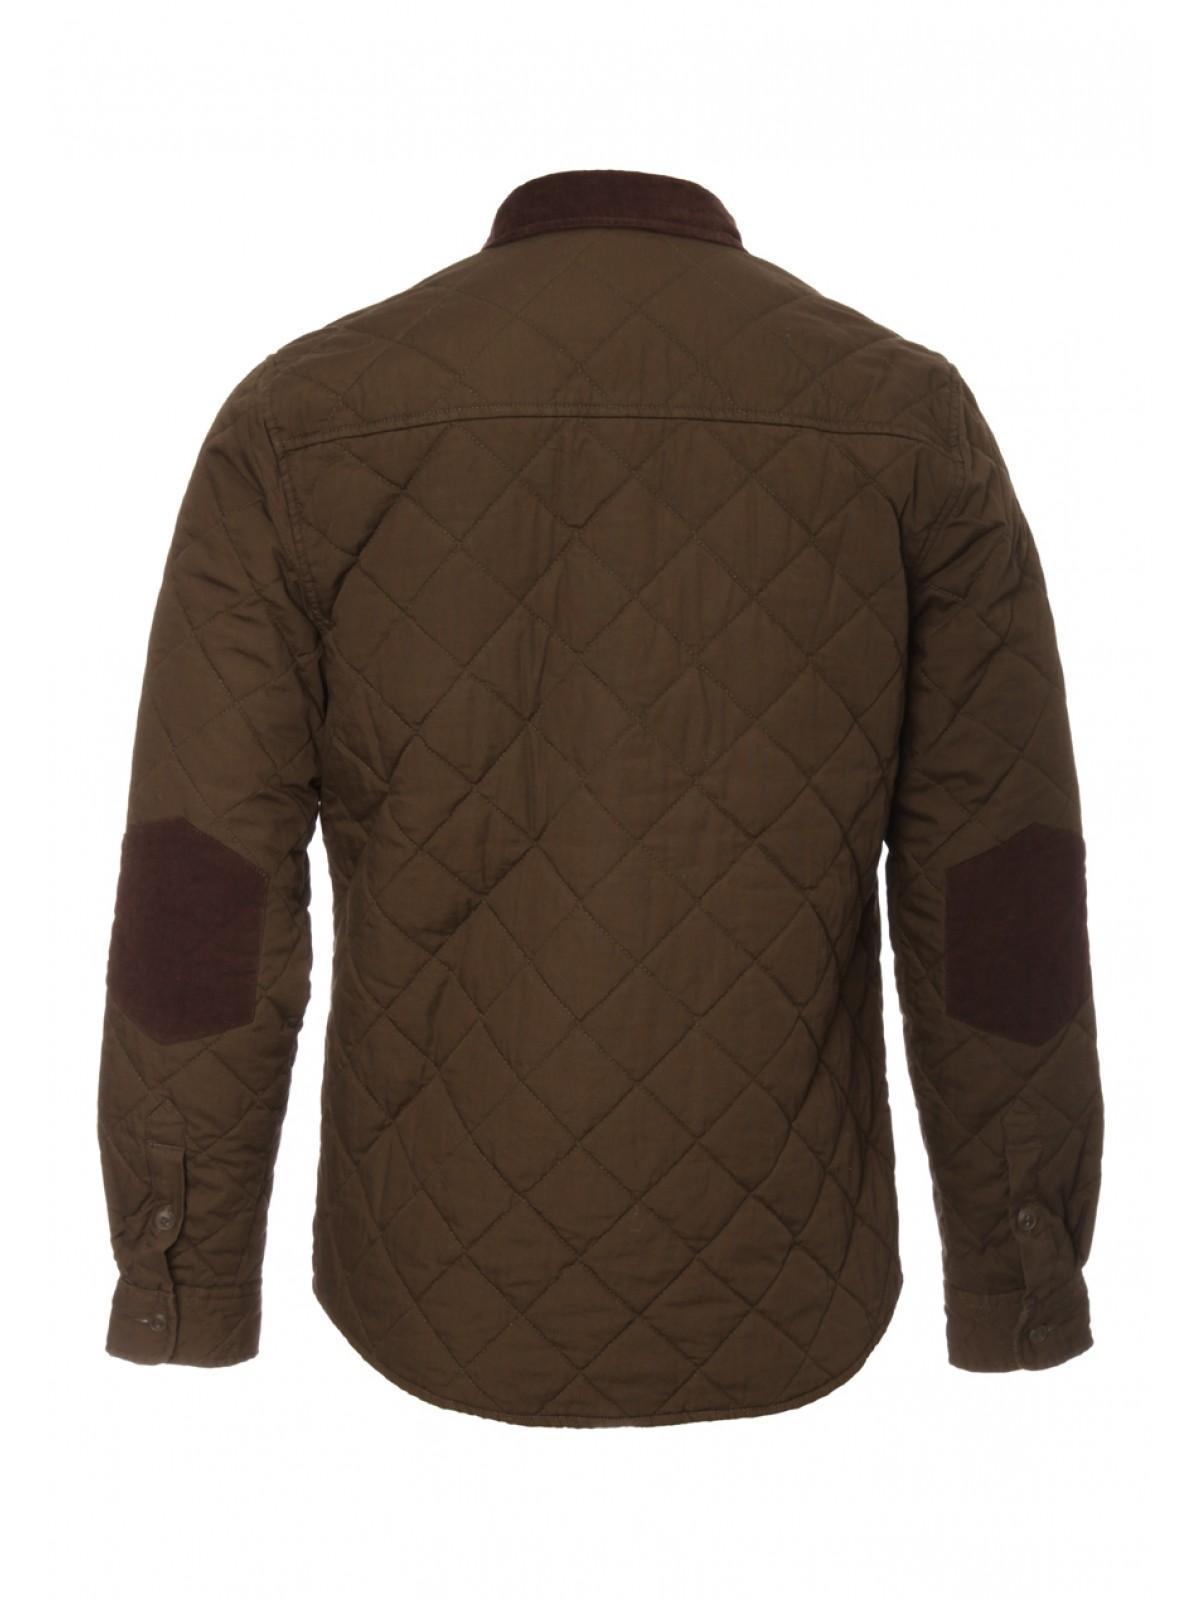 Mens quilted jacket sale uk - Home Mens Quilted Jacket Previousnext Zoom